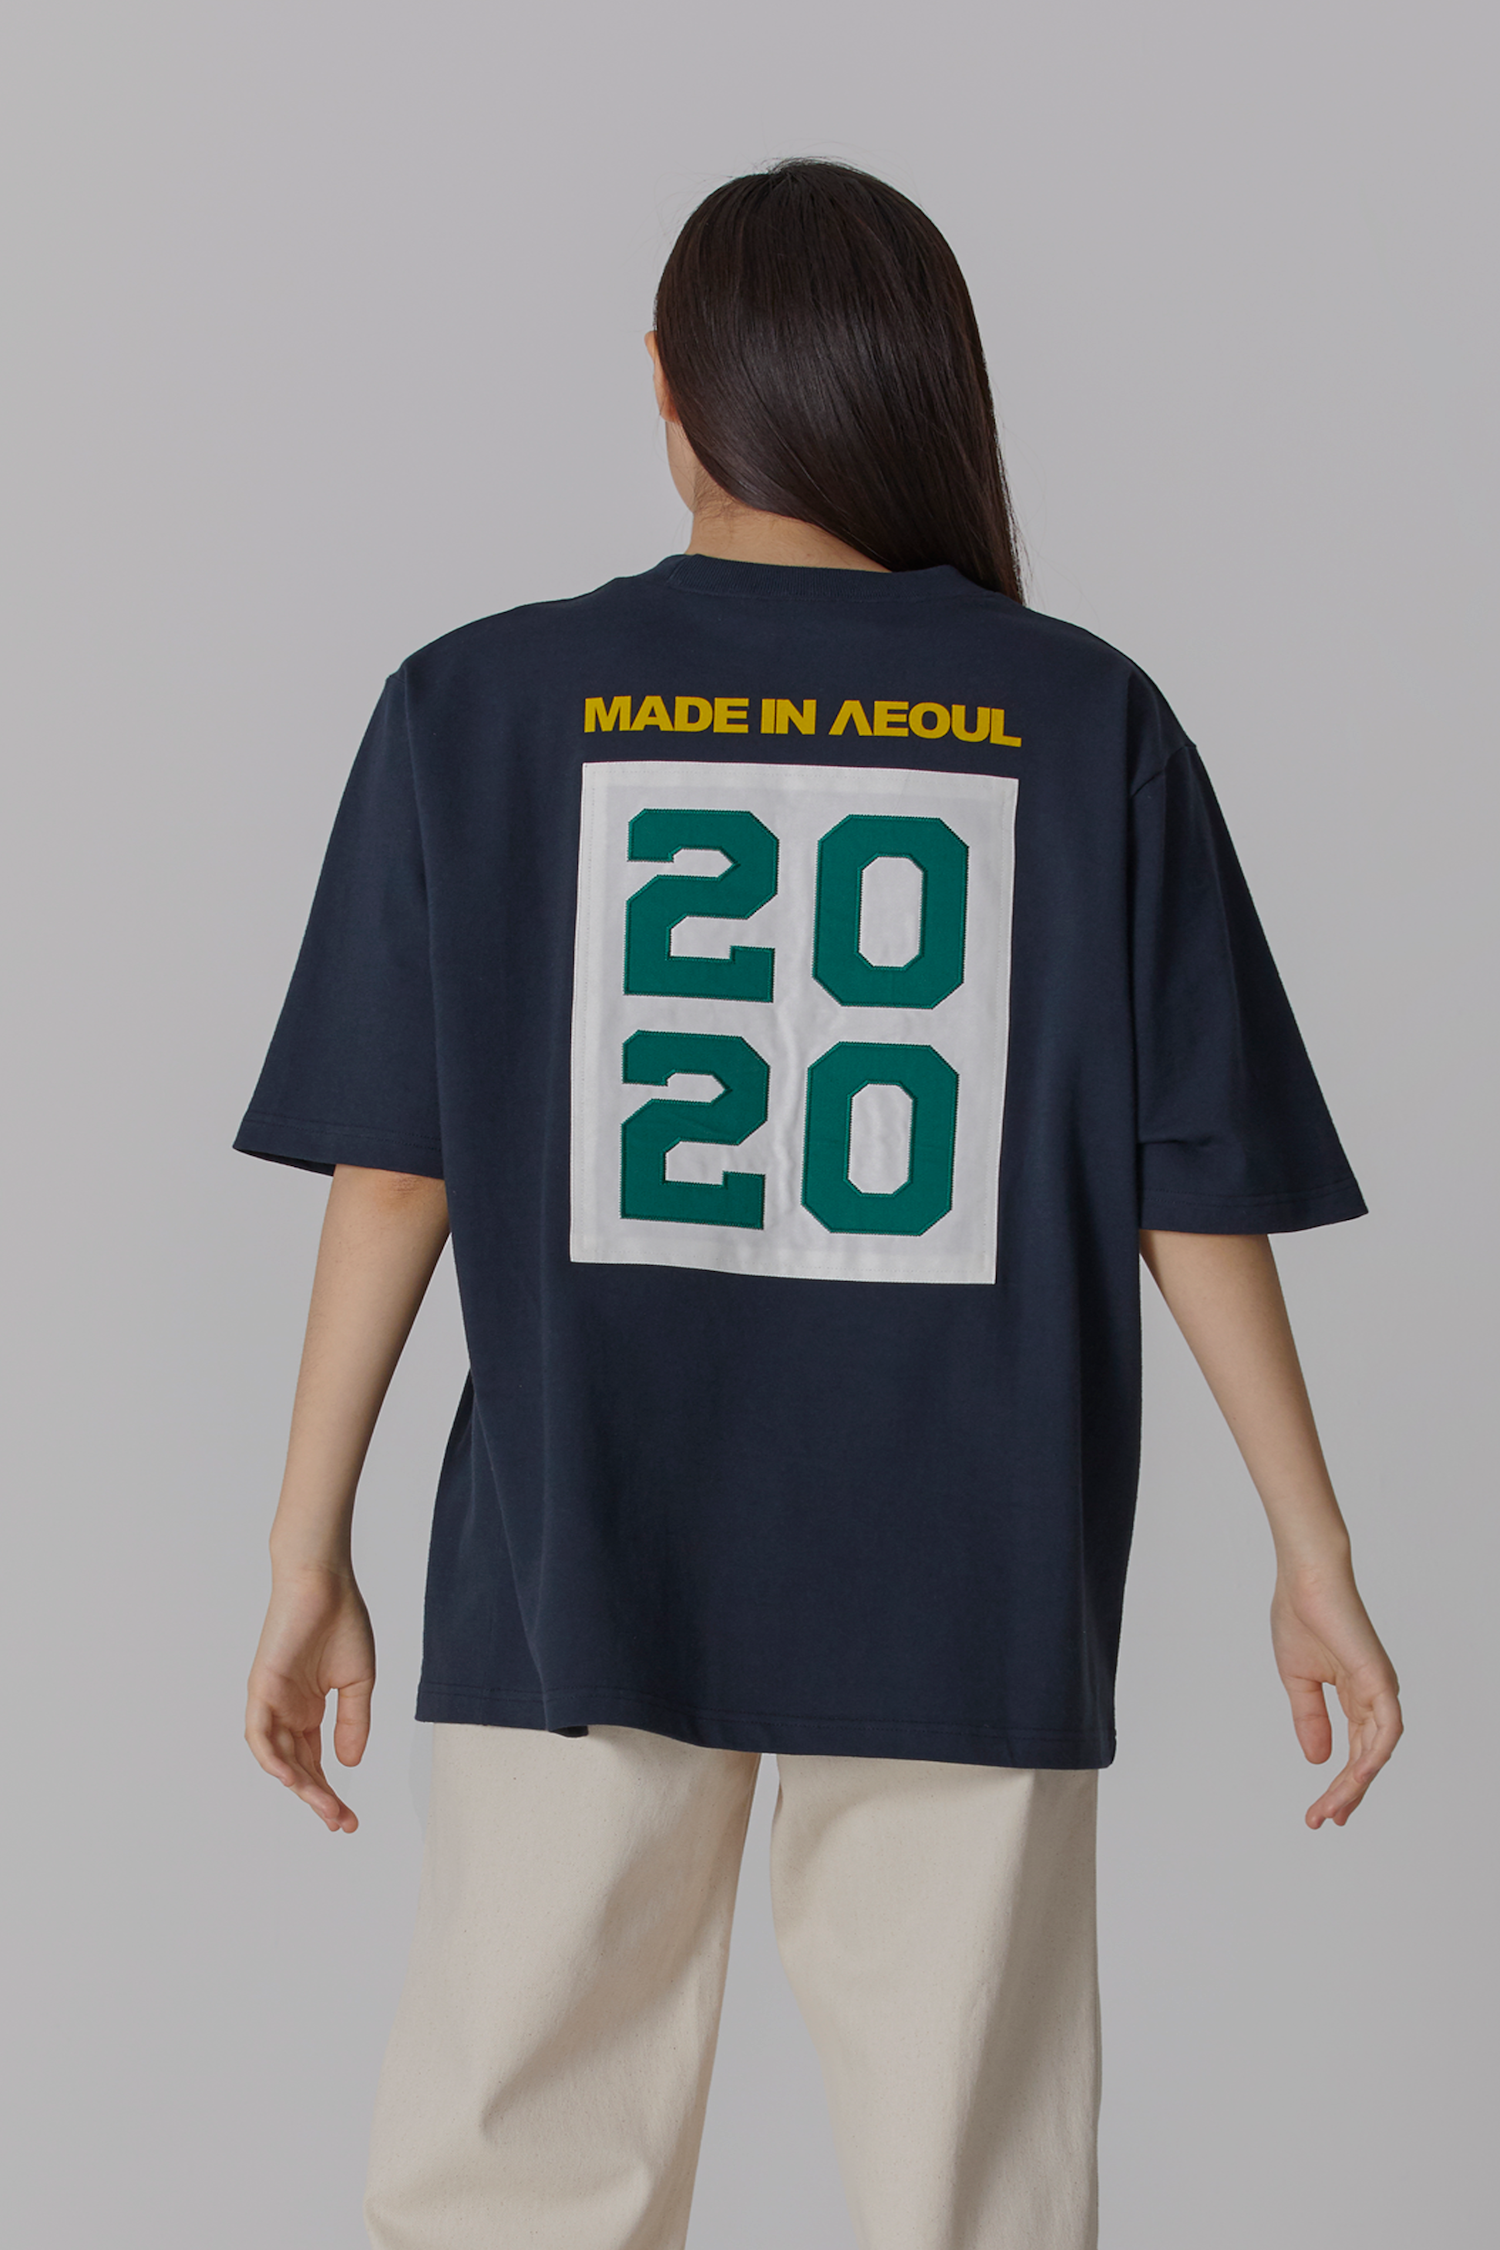 [예약배송] MADE IN SEOUL 2020 T SHIRT NAVY